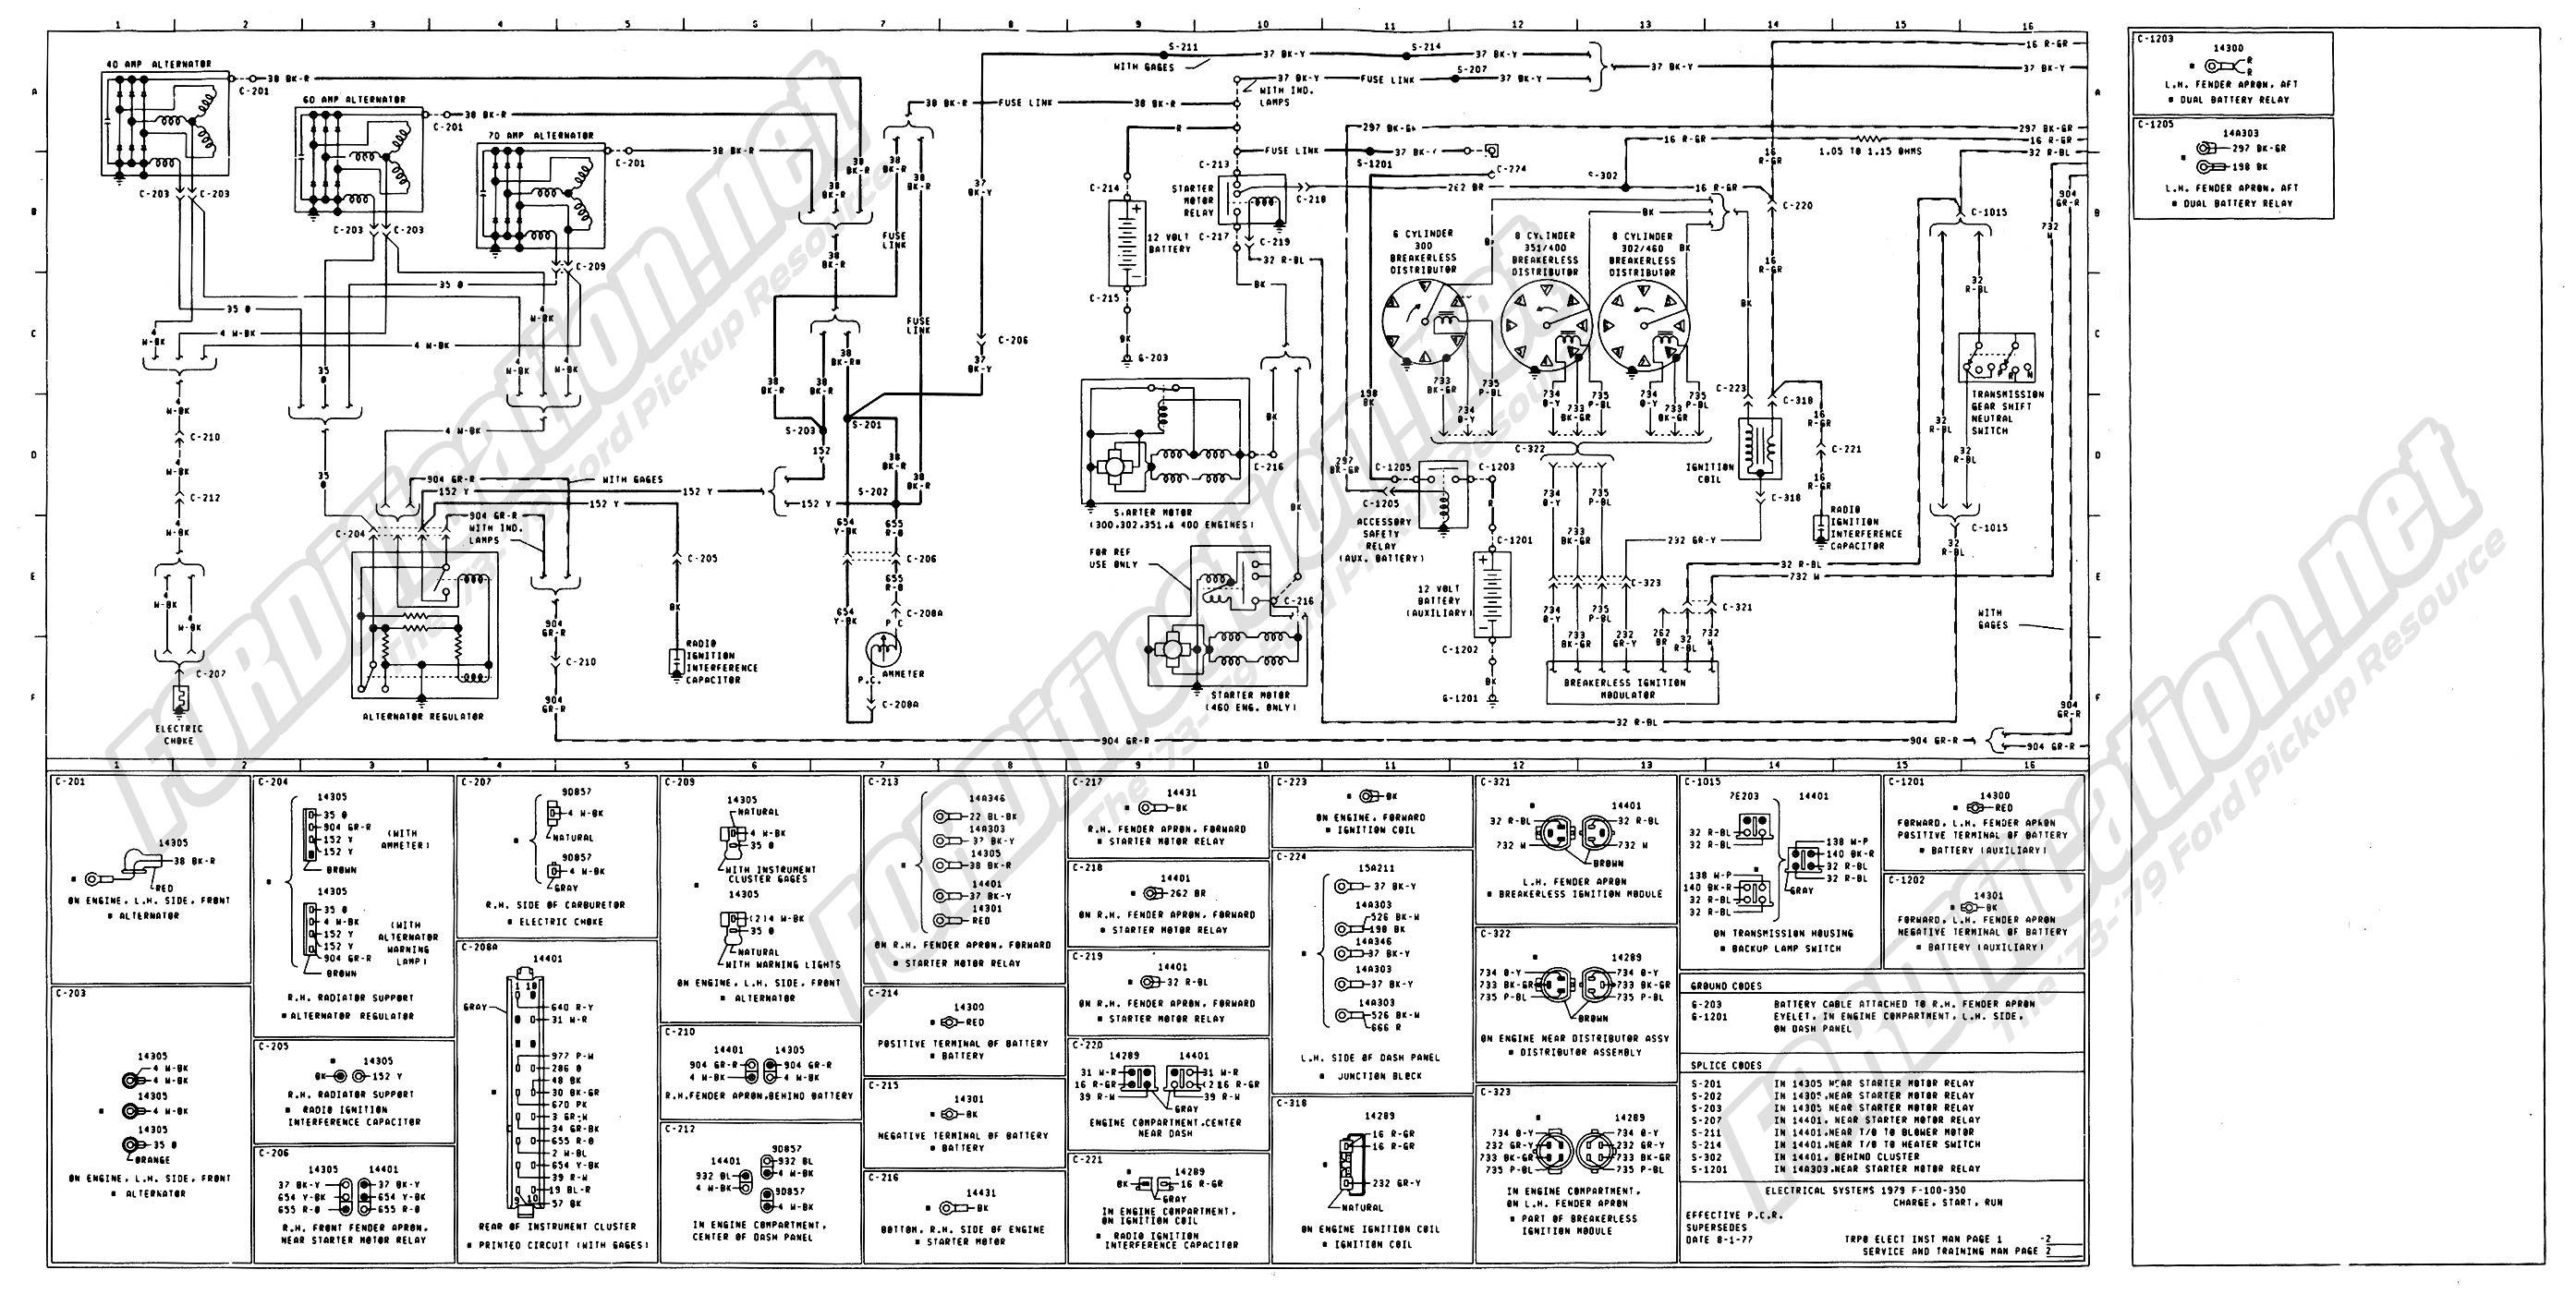 [DIAGRAM_3ER]  1973-1979 Ford Truck Wiring Diagrams & Schematics - FORDification.net | 2008 Ford F 250 Light Wiring Diagram |  | FORDification.net